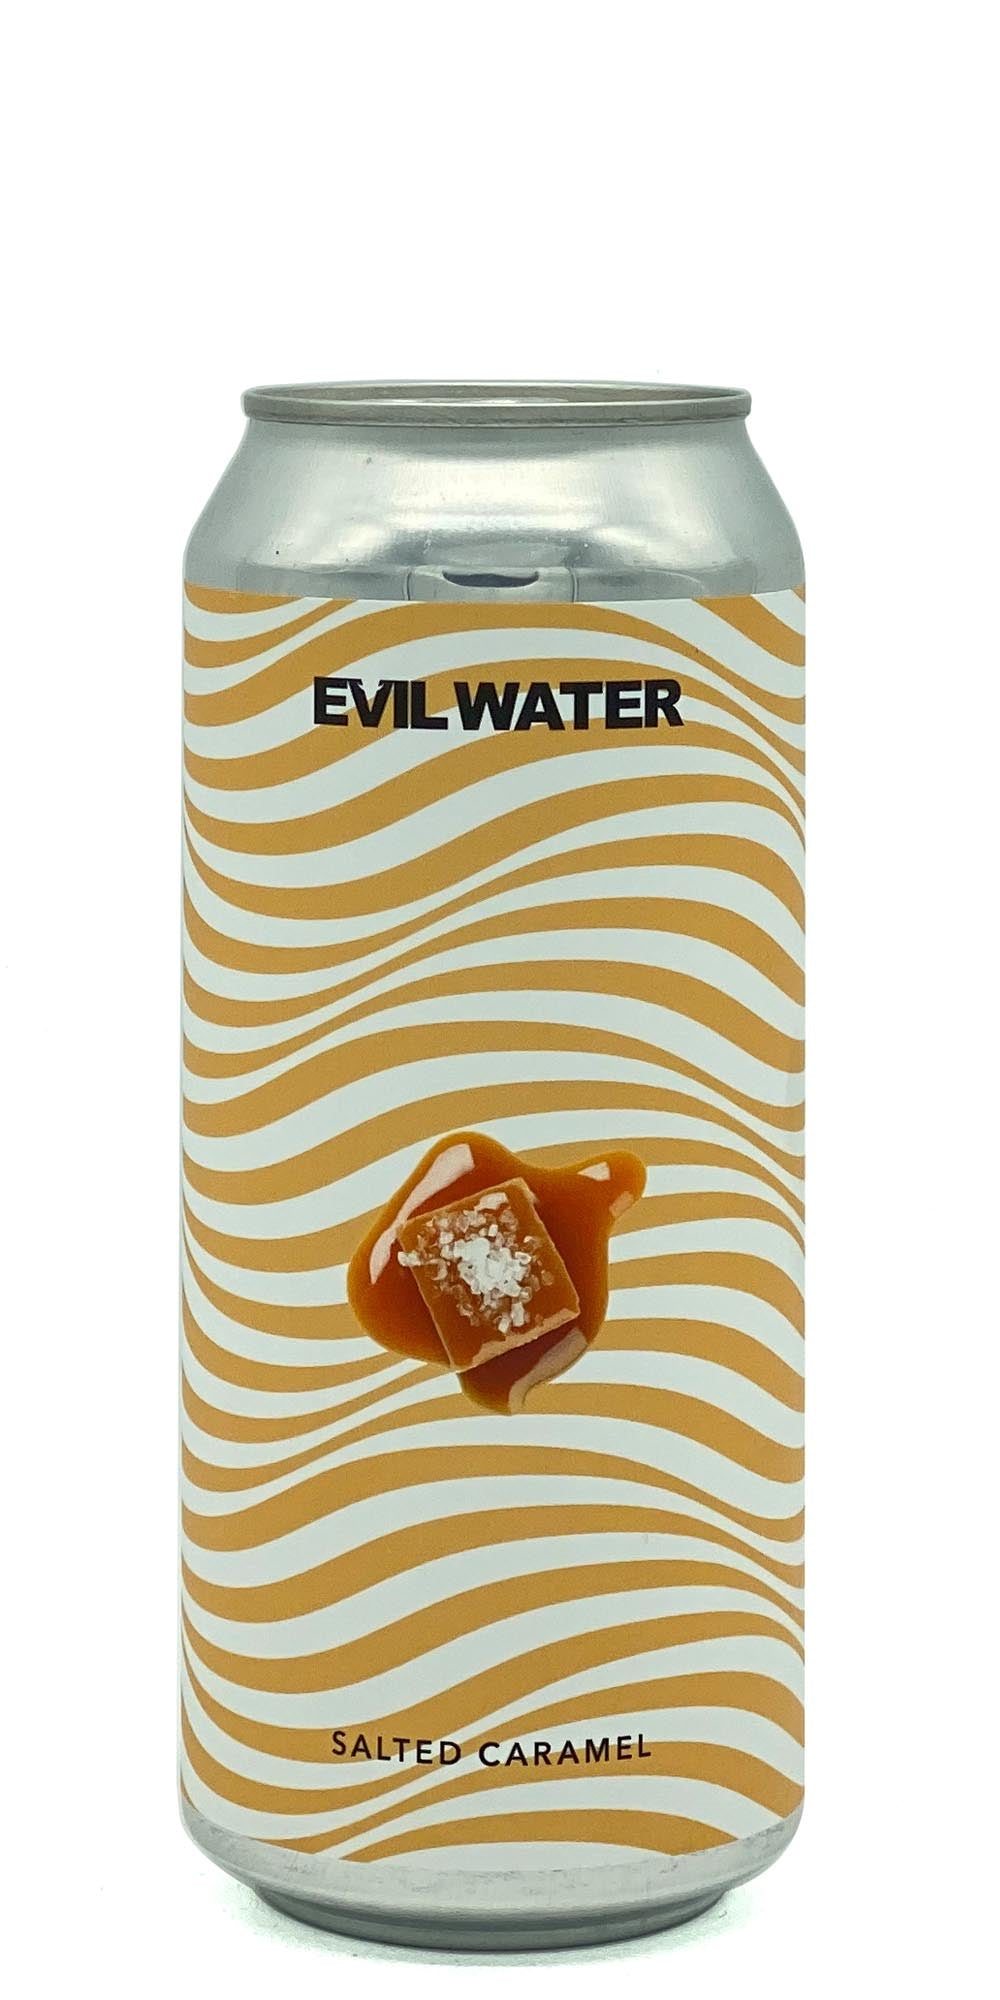 Evil Water - Salted Caramel - Drikbeer - Order Craft Beer Online